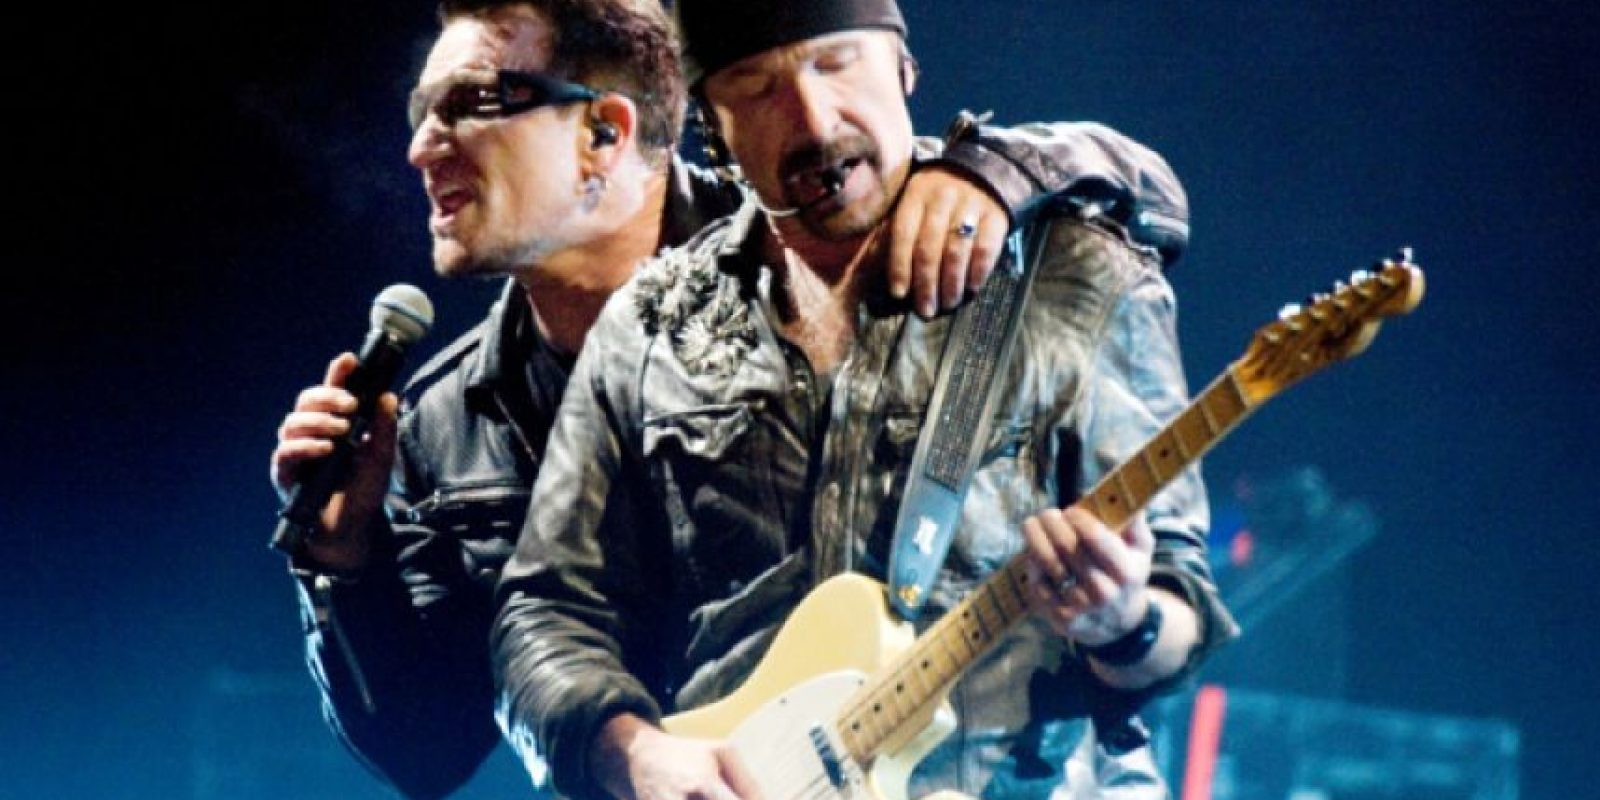 Bono Y The Edge integrantes de U2 Foto: Agencias